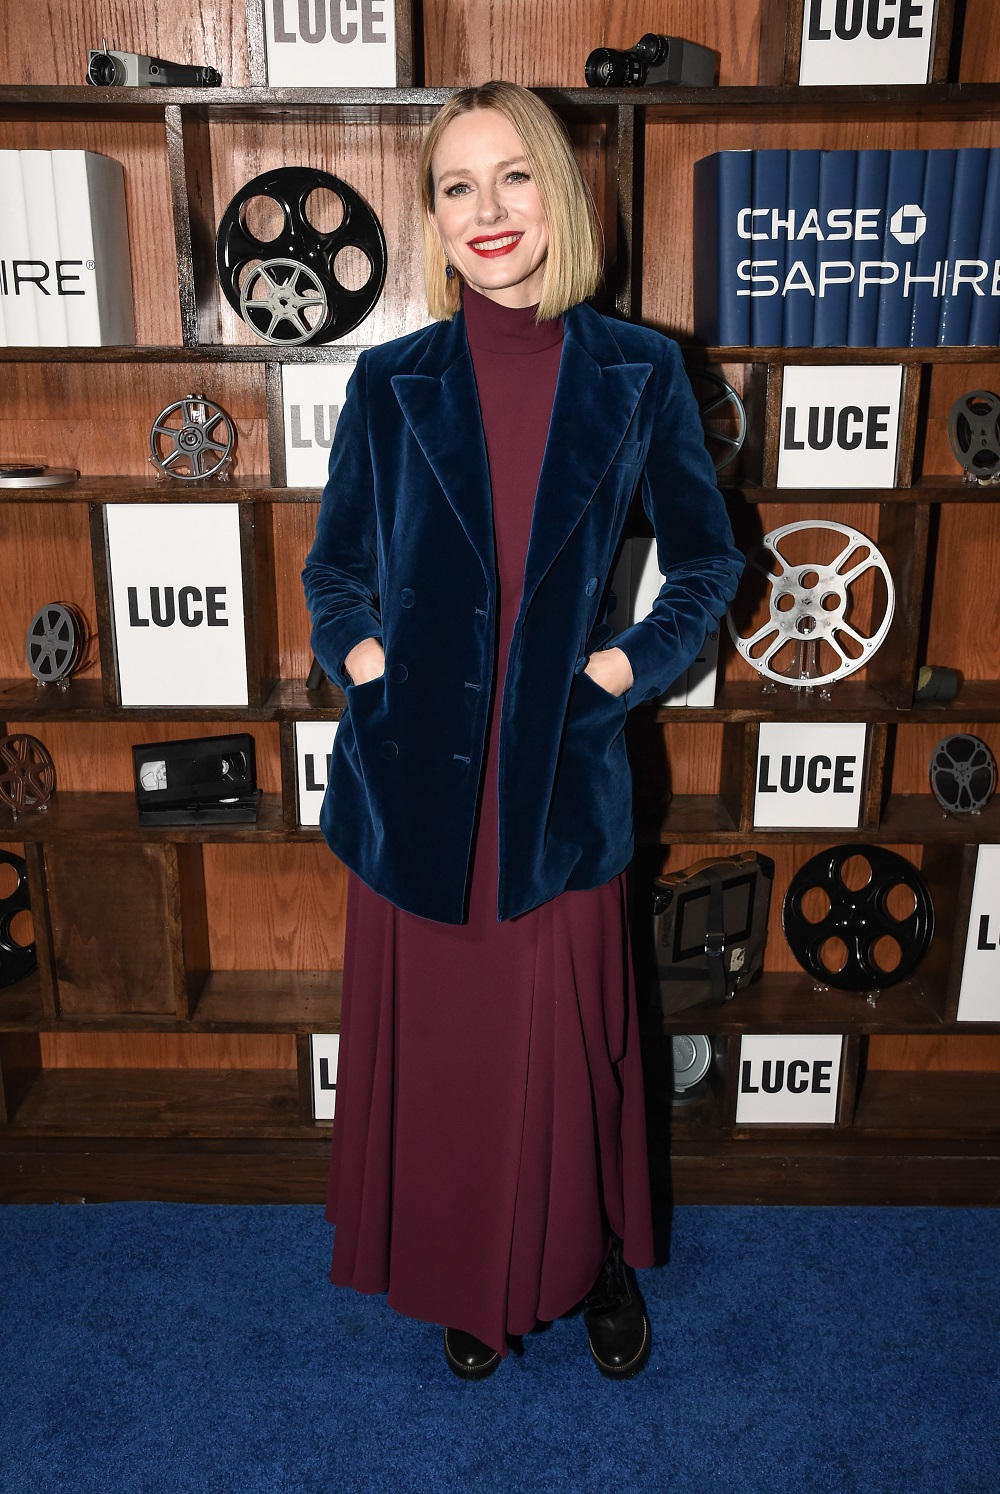 Luce After Party at Sundance Film Festival – Gallery